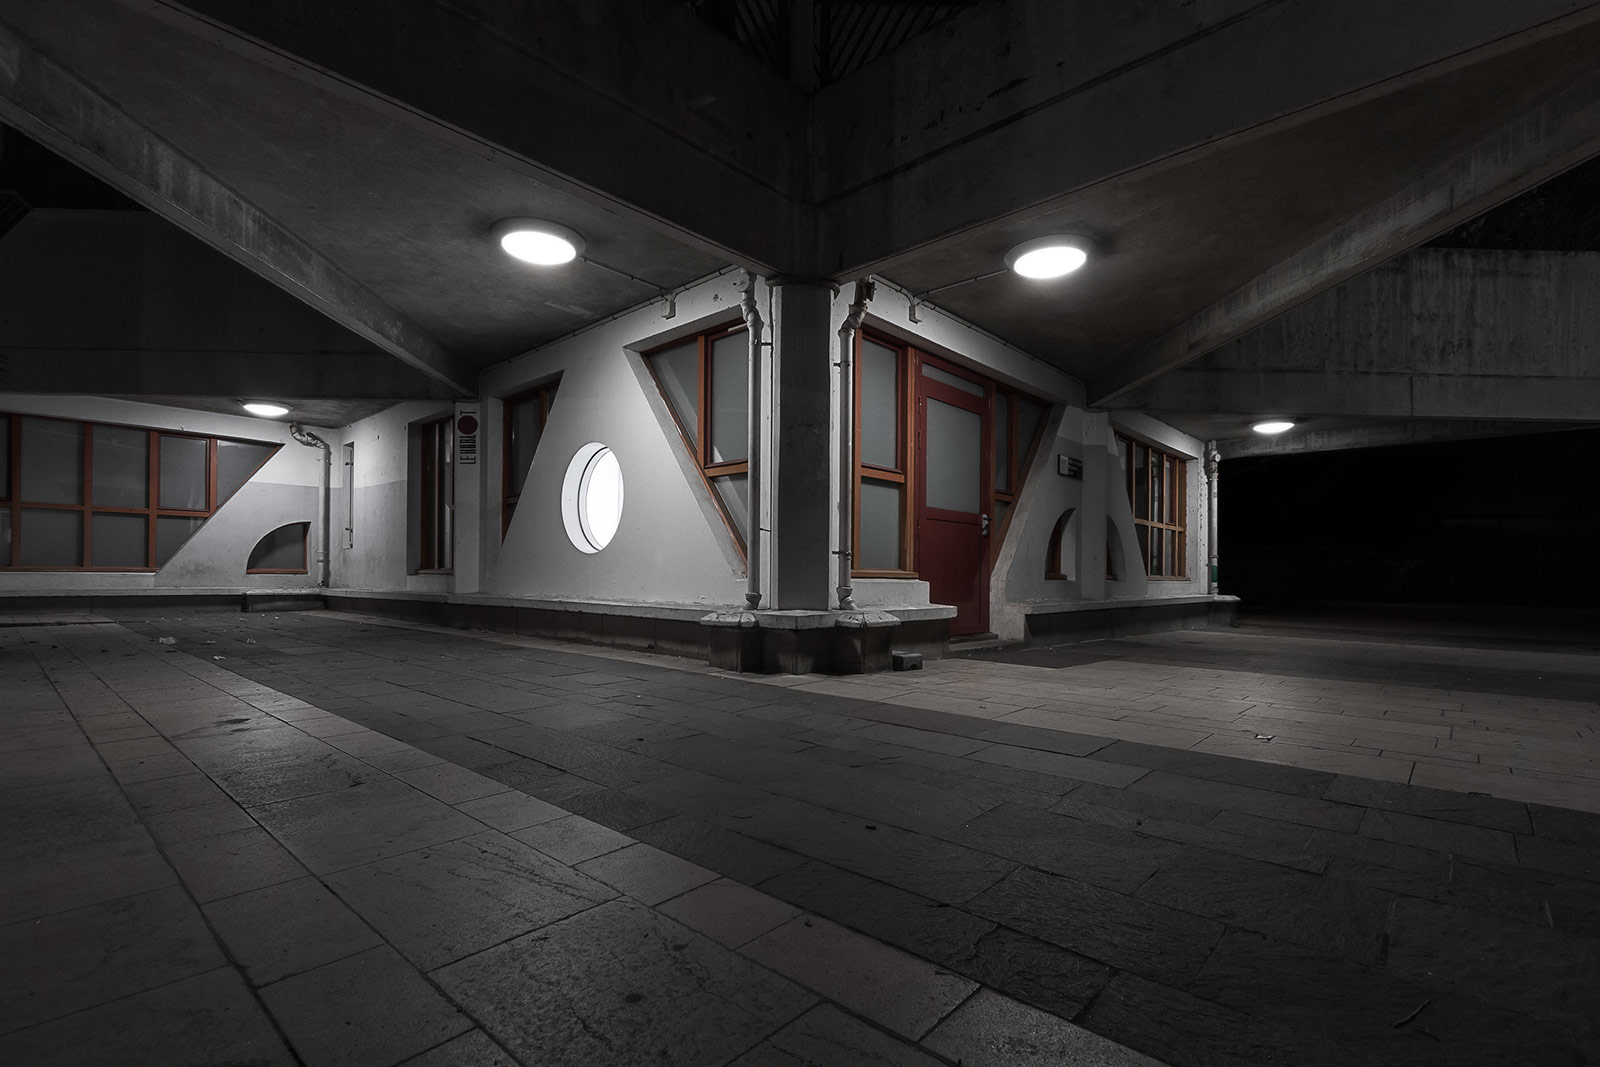 Star of concrete - photographie urbaine de nuit